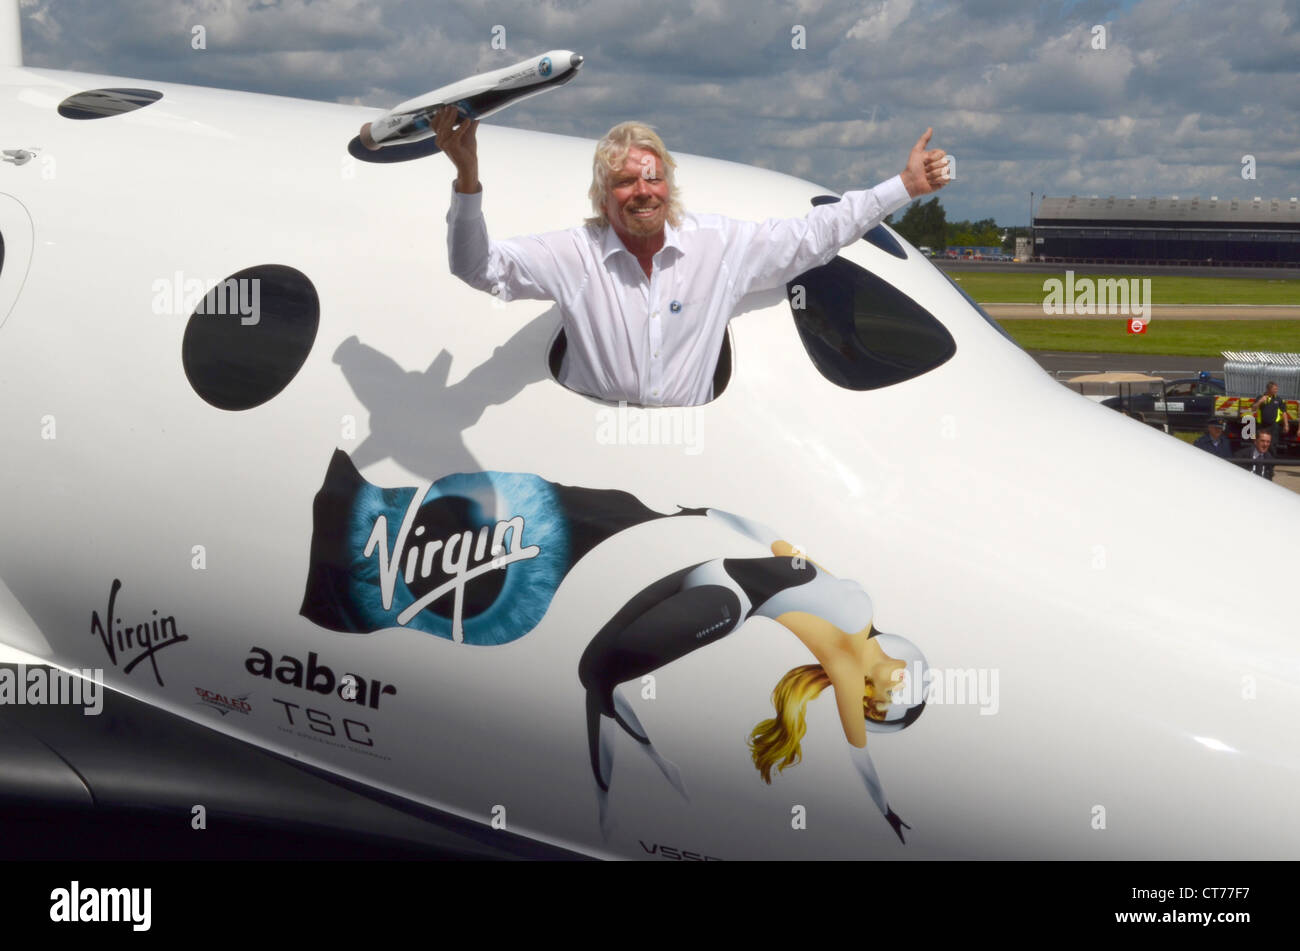 Sir Richard Branson, Founder of Virgin Galactic, with a model of LauncherOne in a replica of SpaceShipTwo. - Stock Image